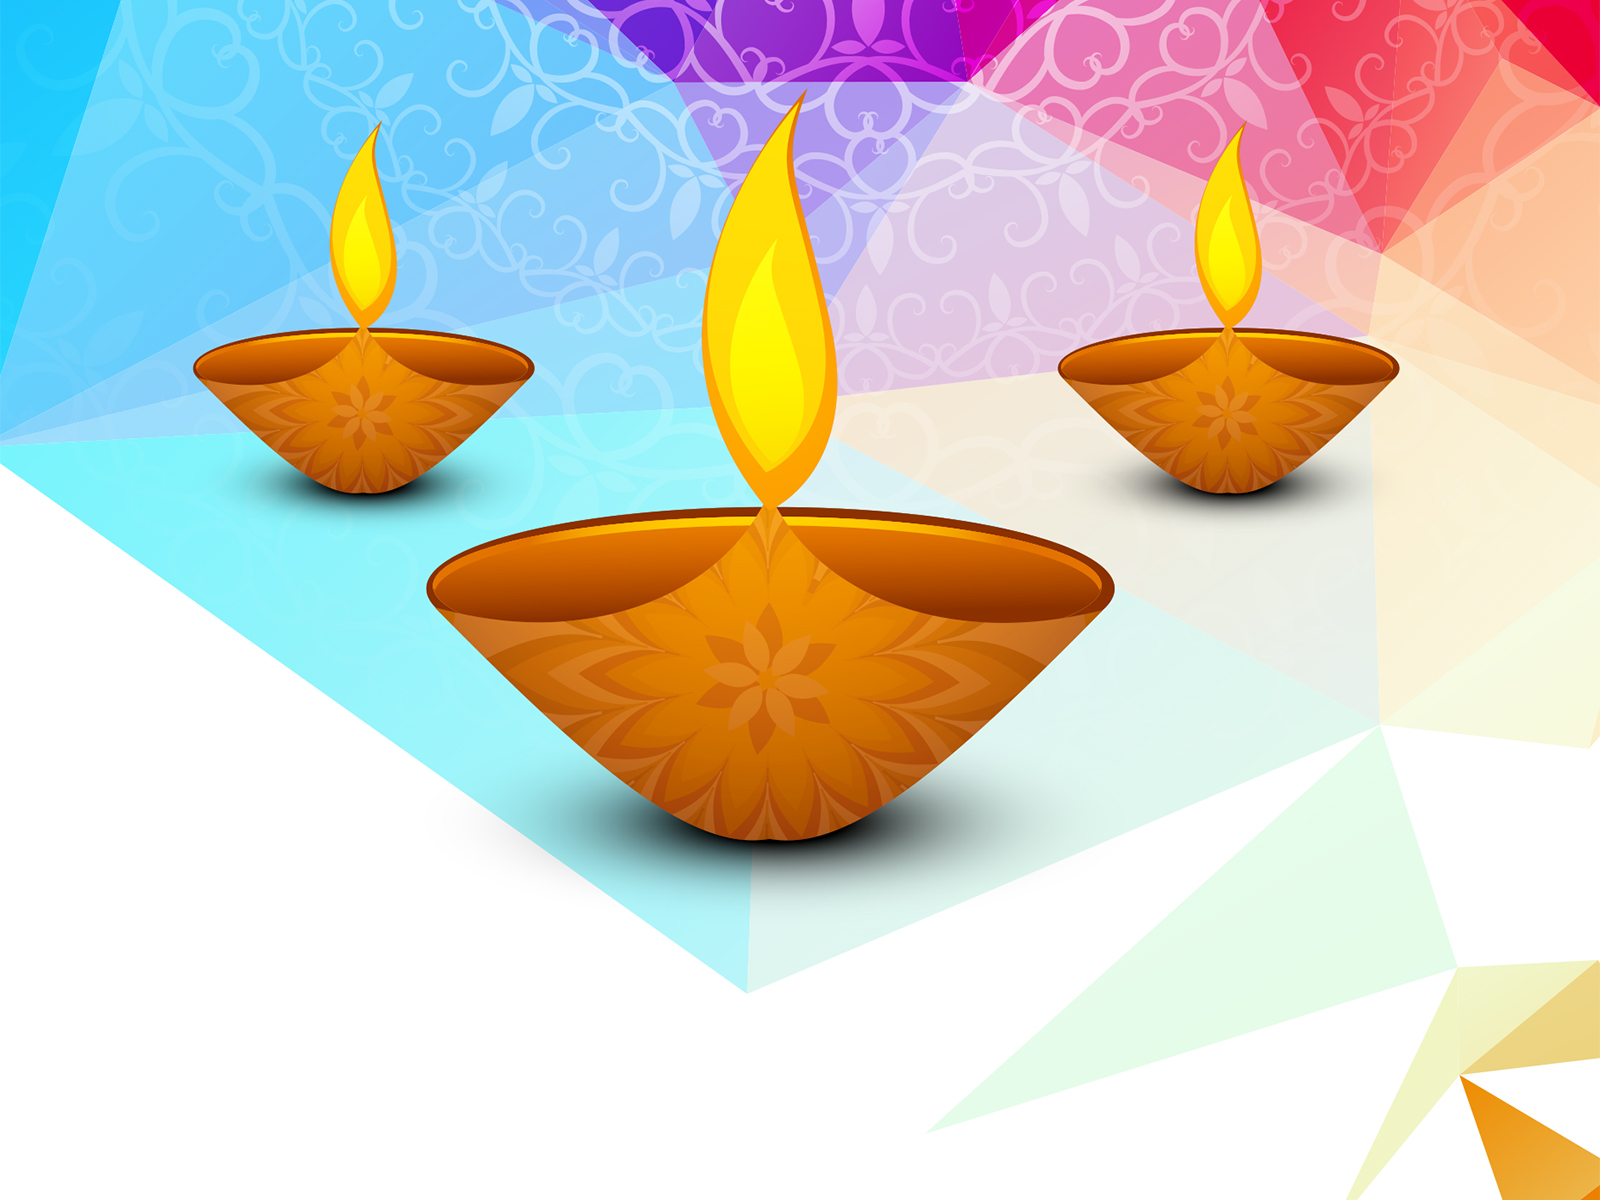 Diwali Greetings Backgrounds Holiday Orange White Yellow